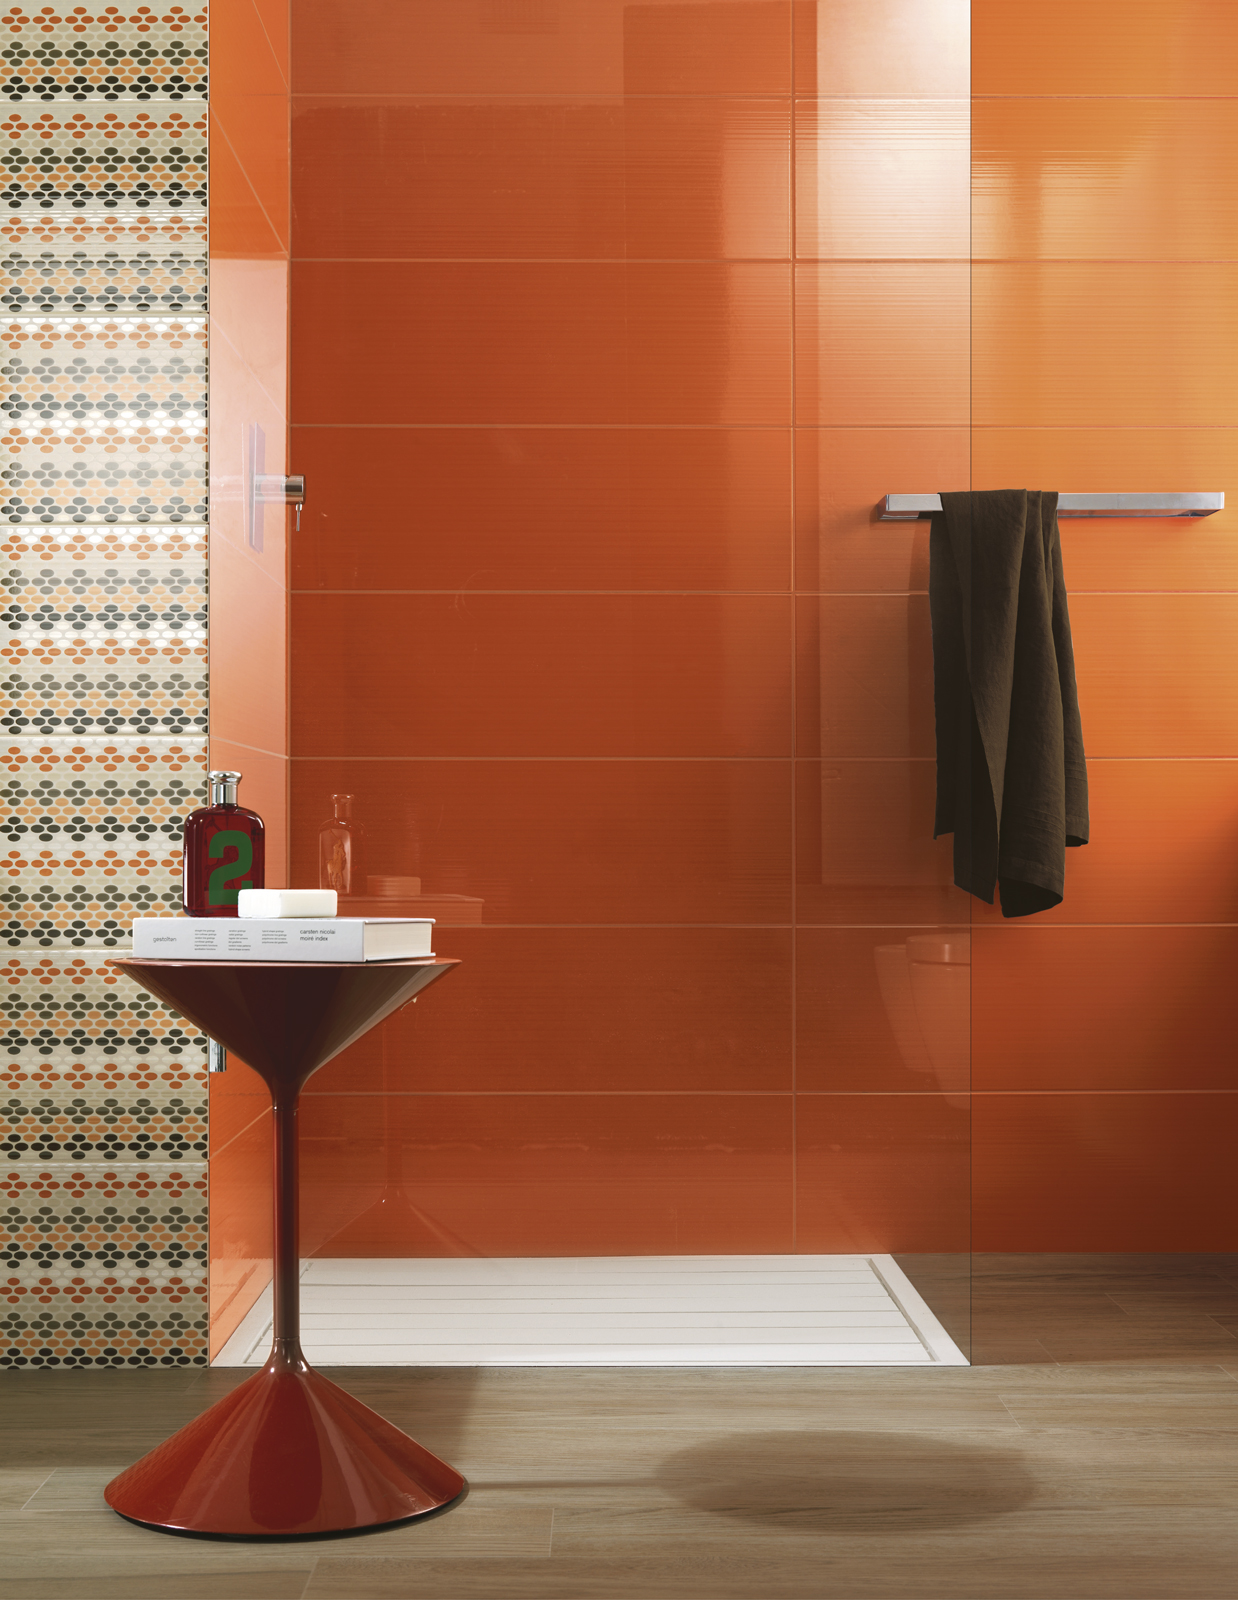 Collezione smart piastrelle colorate per bagno ragno for Salle de bain coloree